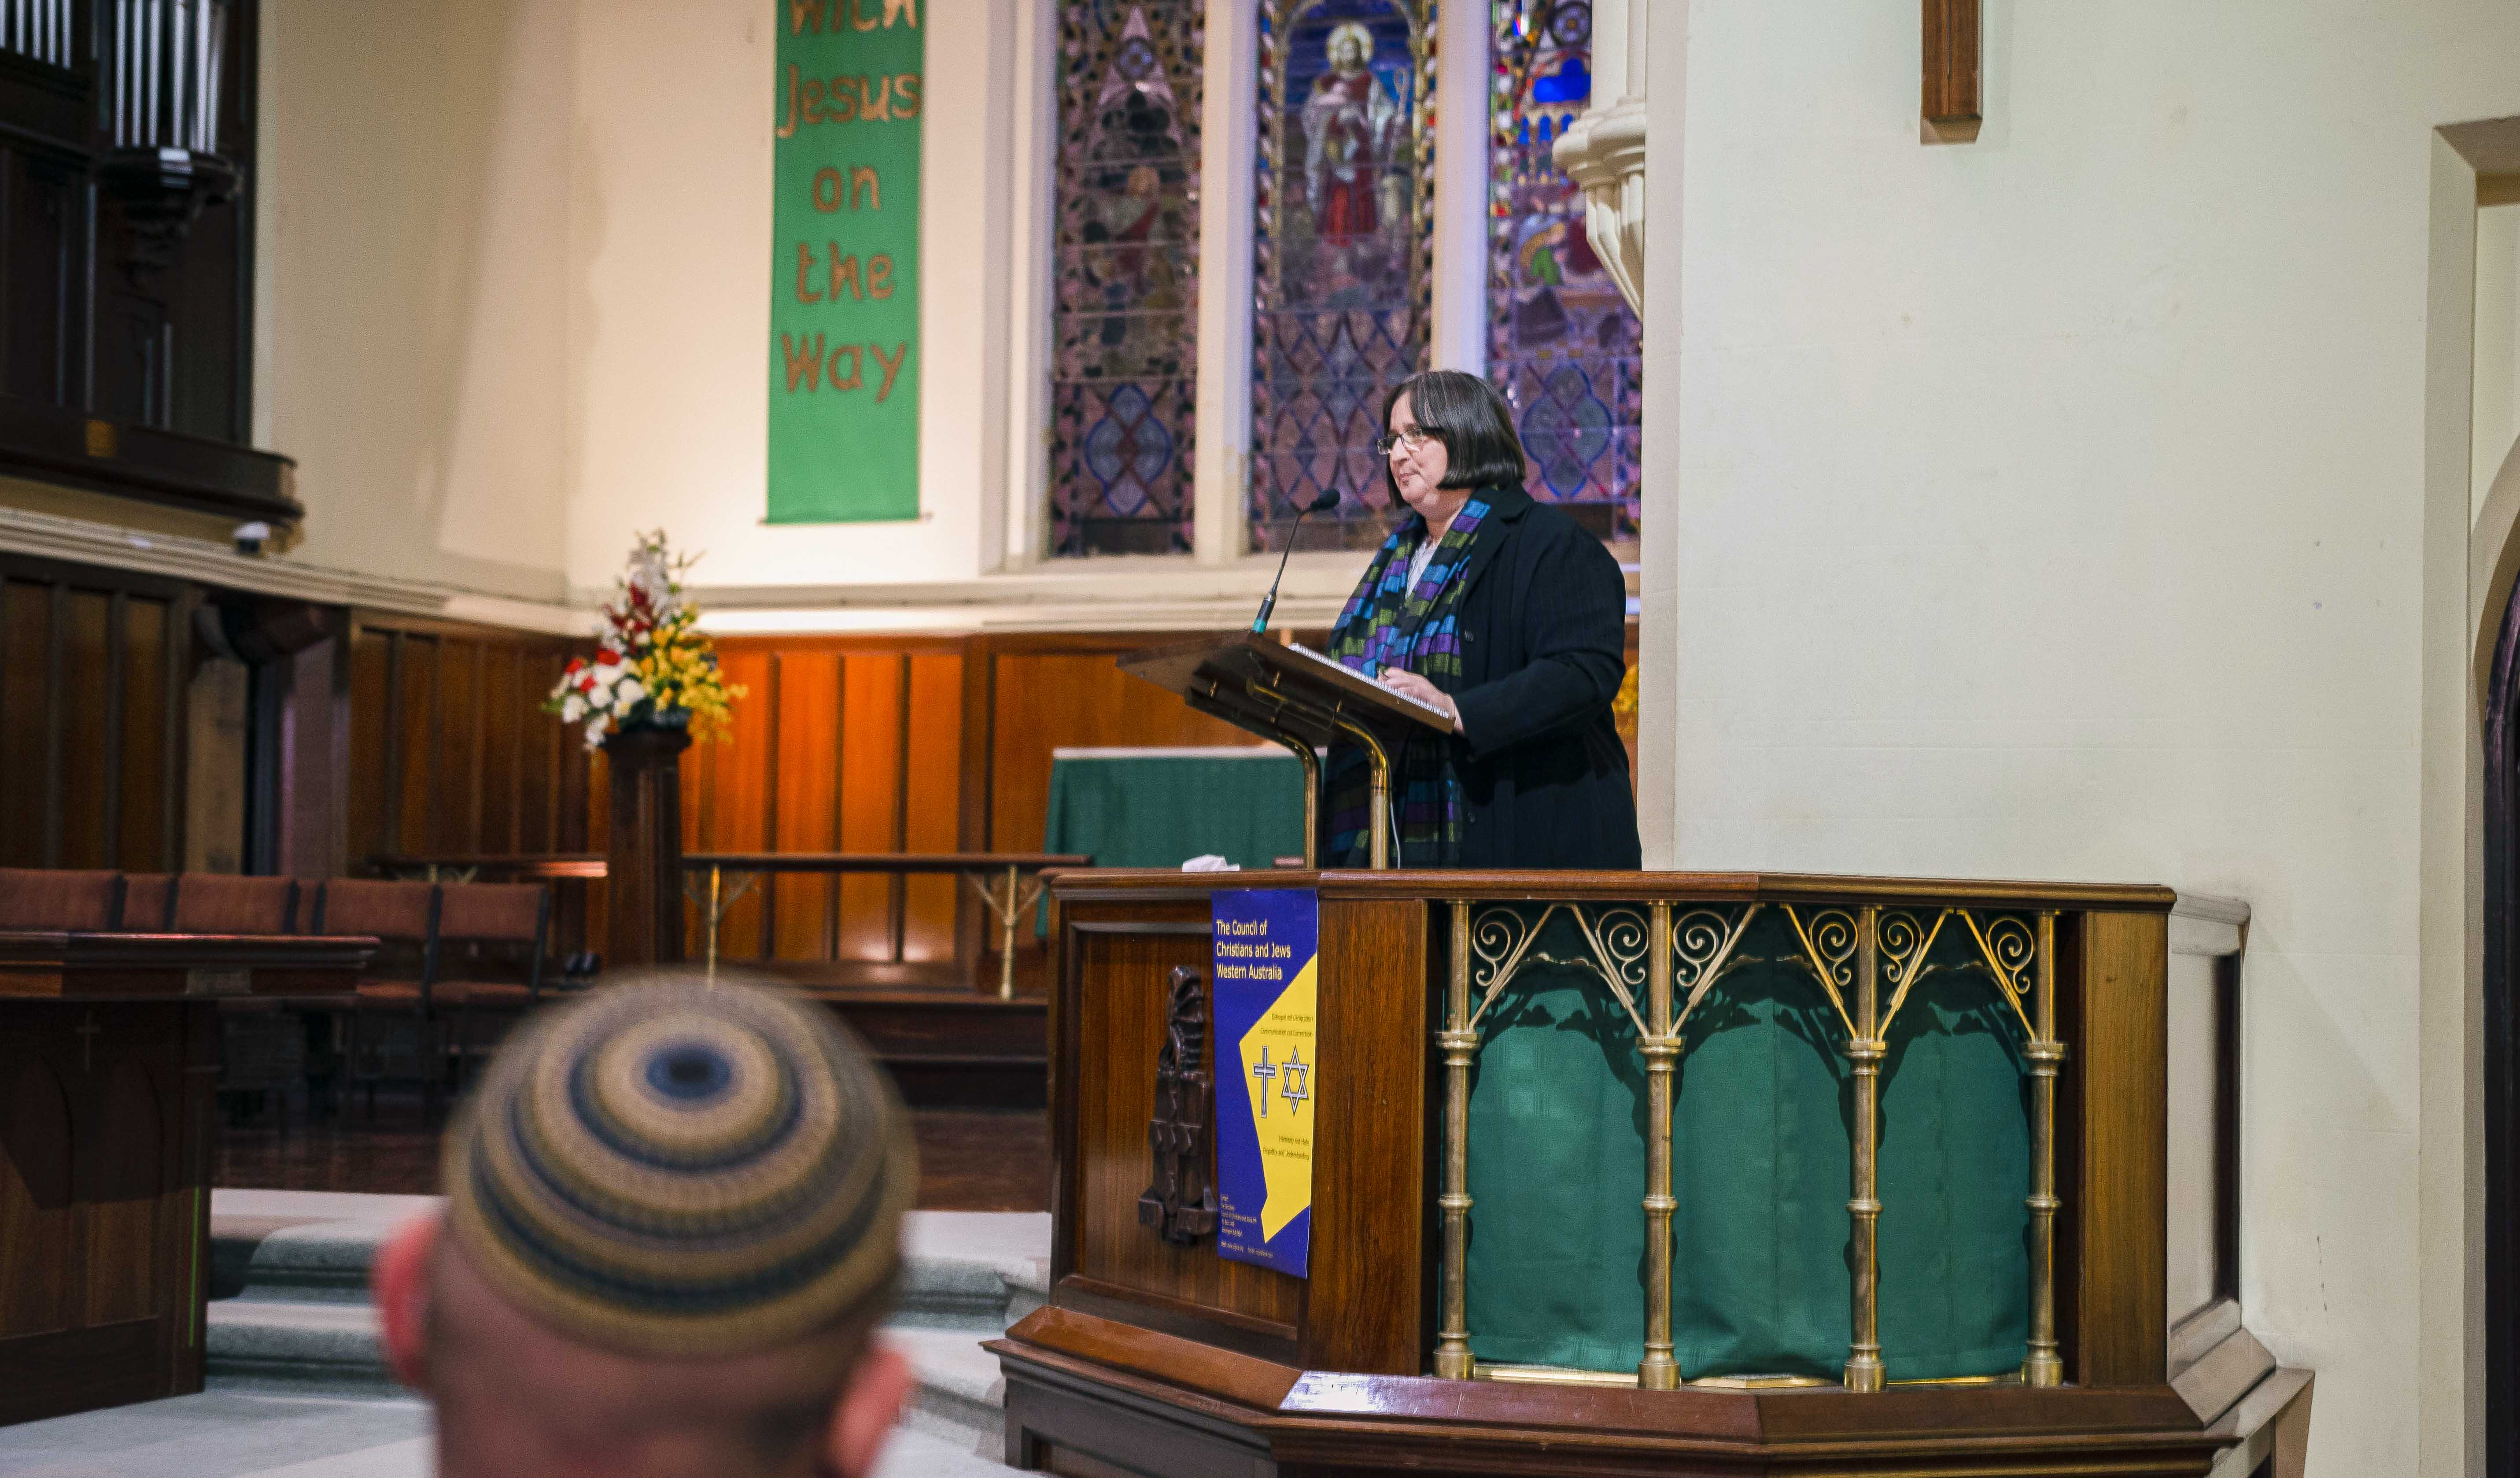 """Anette Adelmann, General Secretary of the International Council of Christians and Jews, delivers her seminar """"Antisemitism: What can we do?"""" to the CCJWA on Monday 12 August. Photo: Eric Martin."""